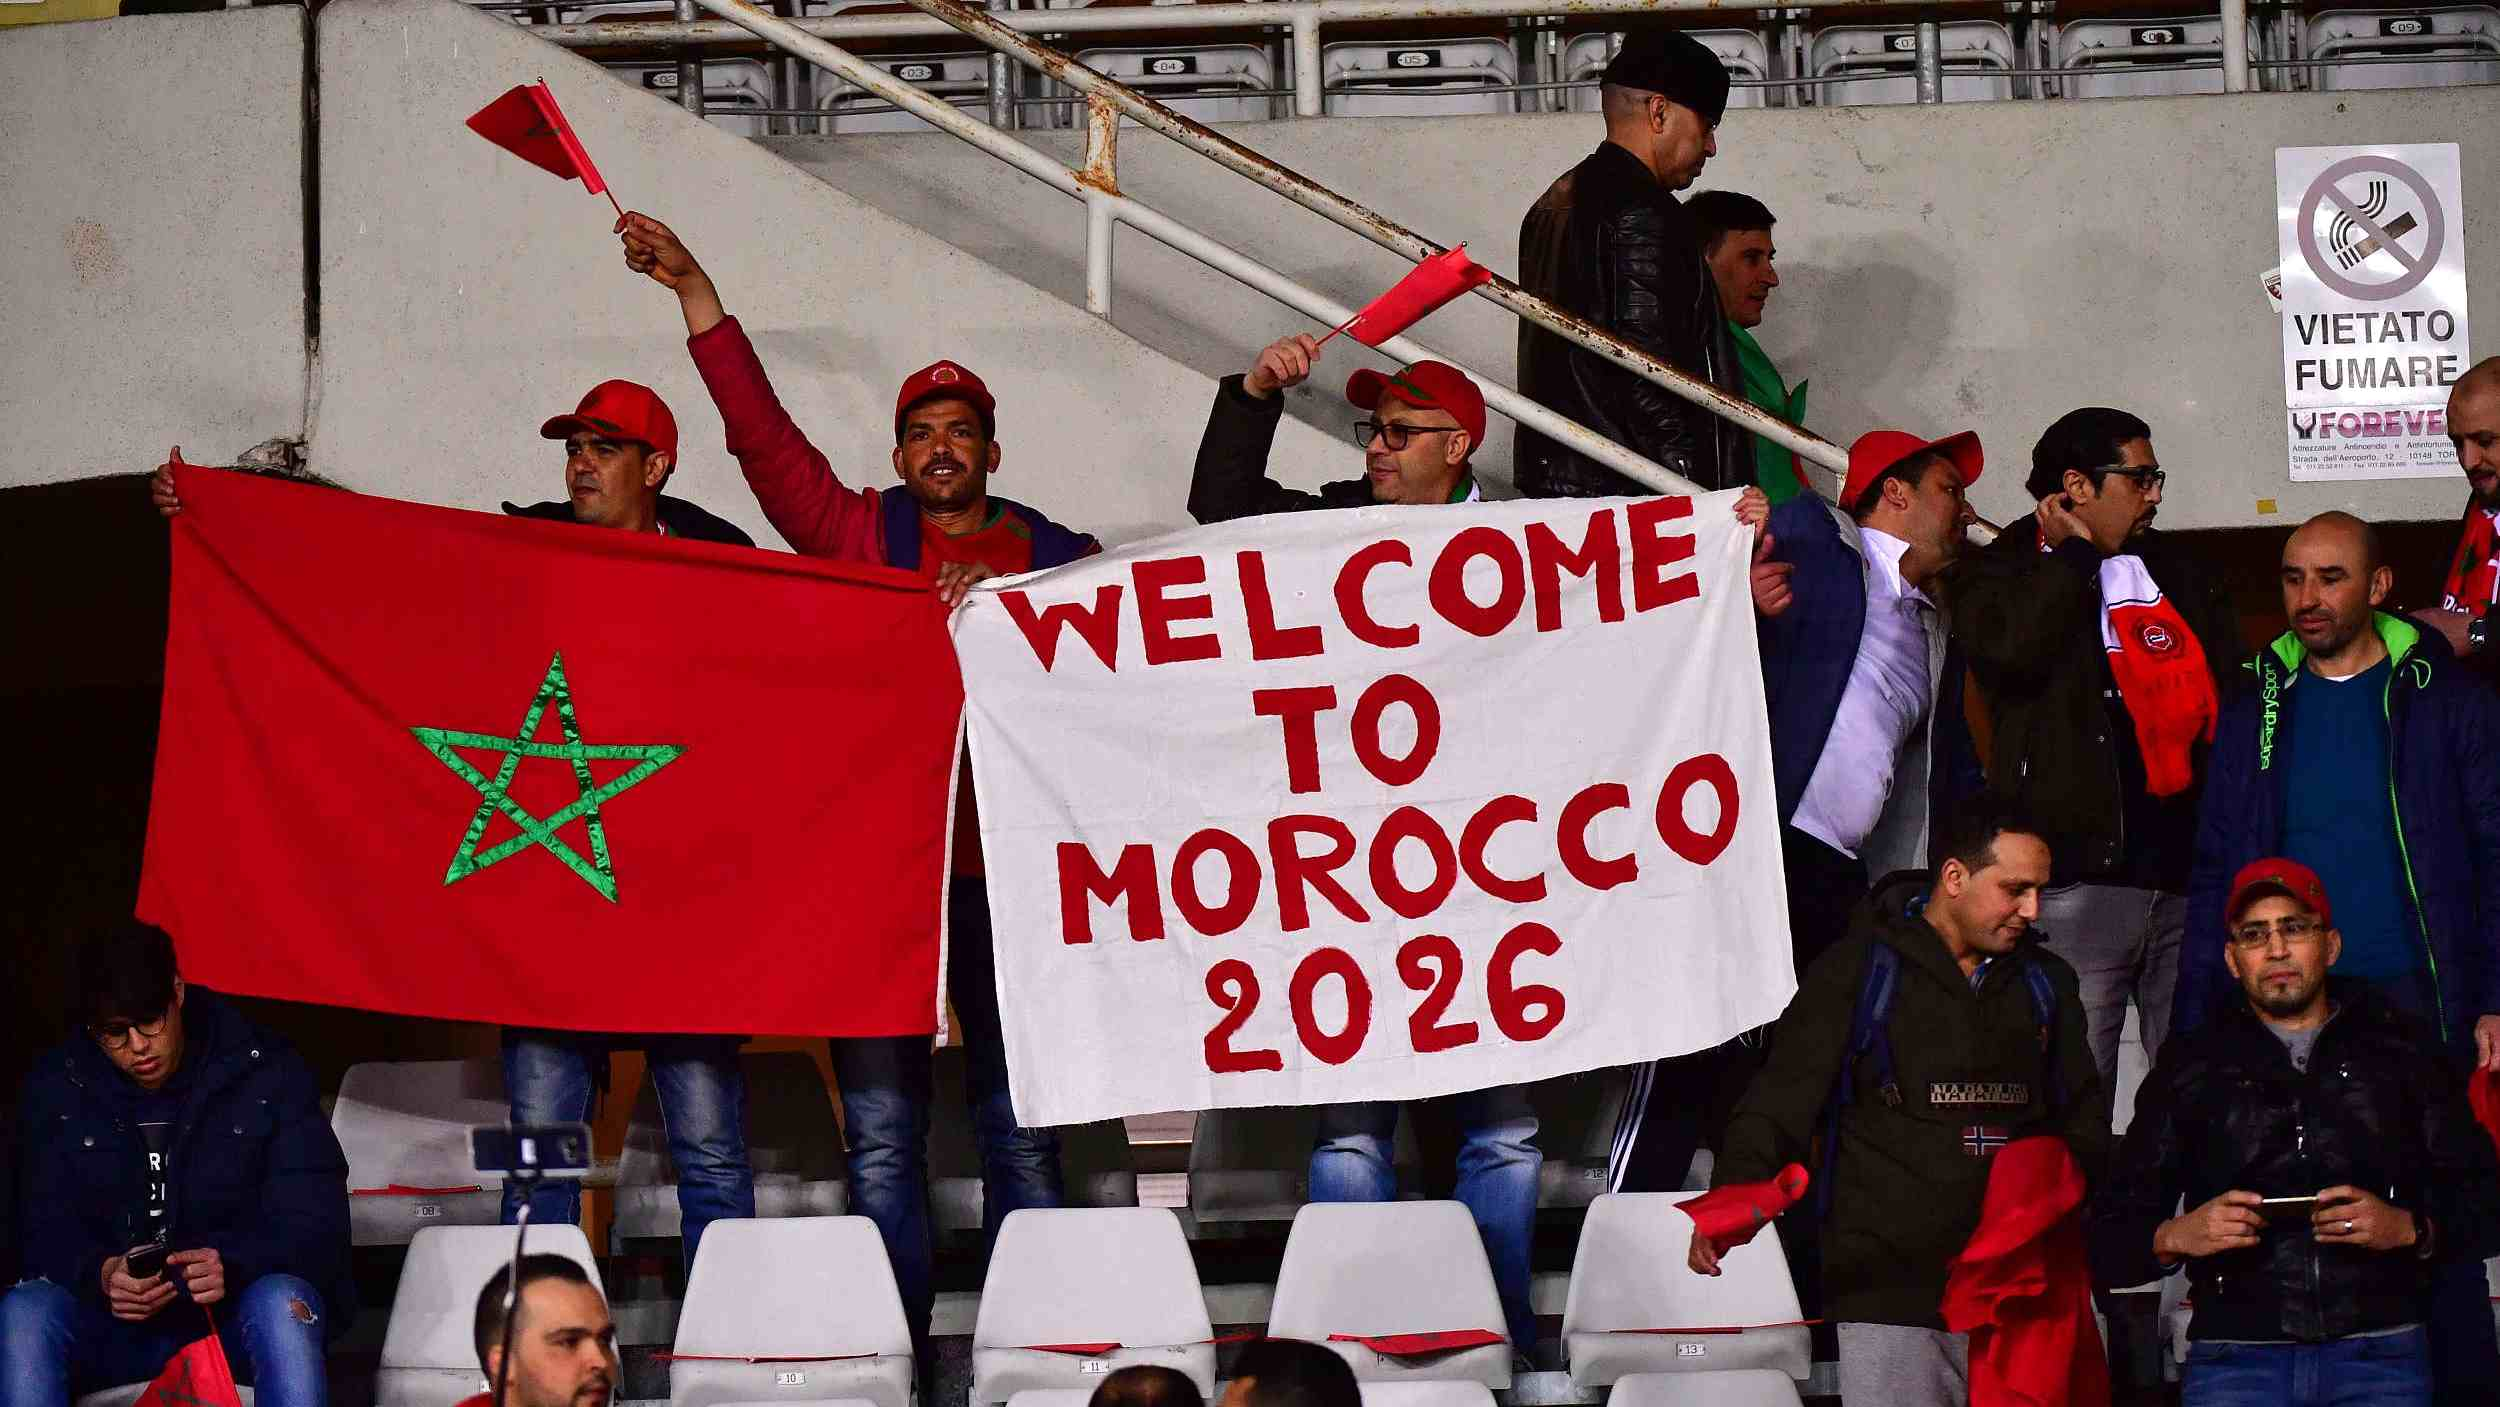 Fifth time unlucky! Morocco losses 2026 World Cup hosting bid